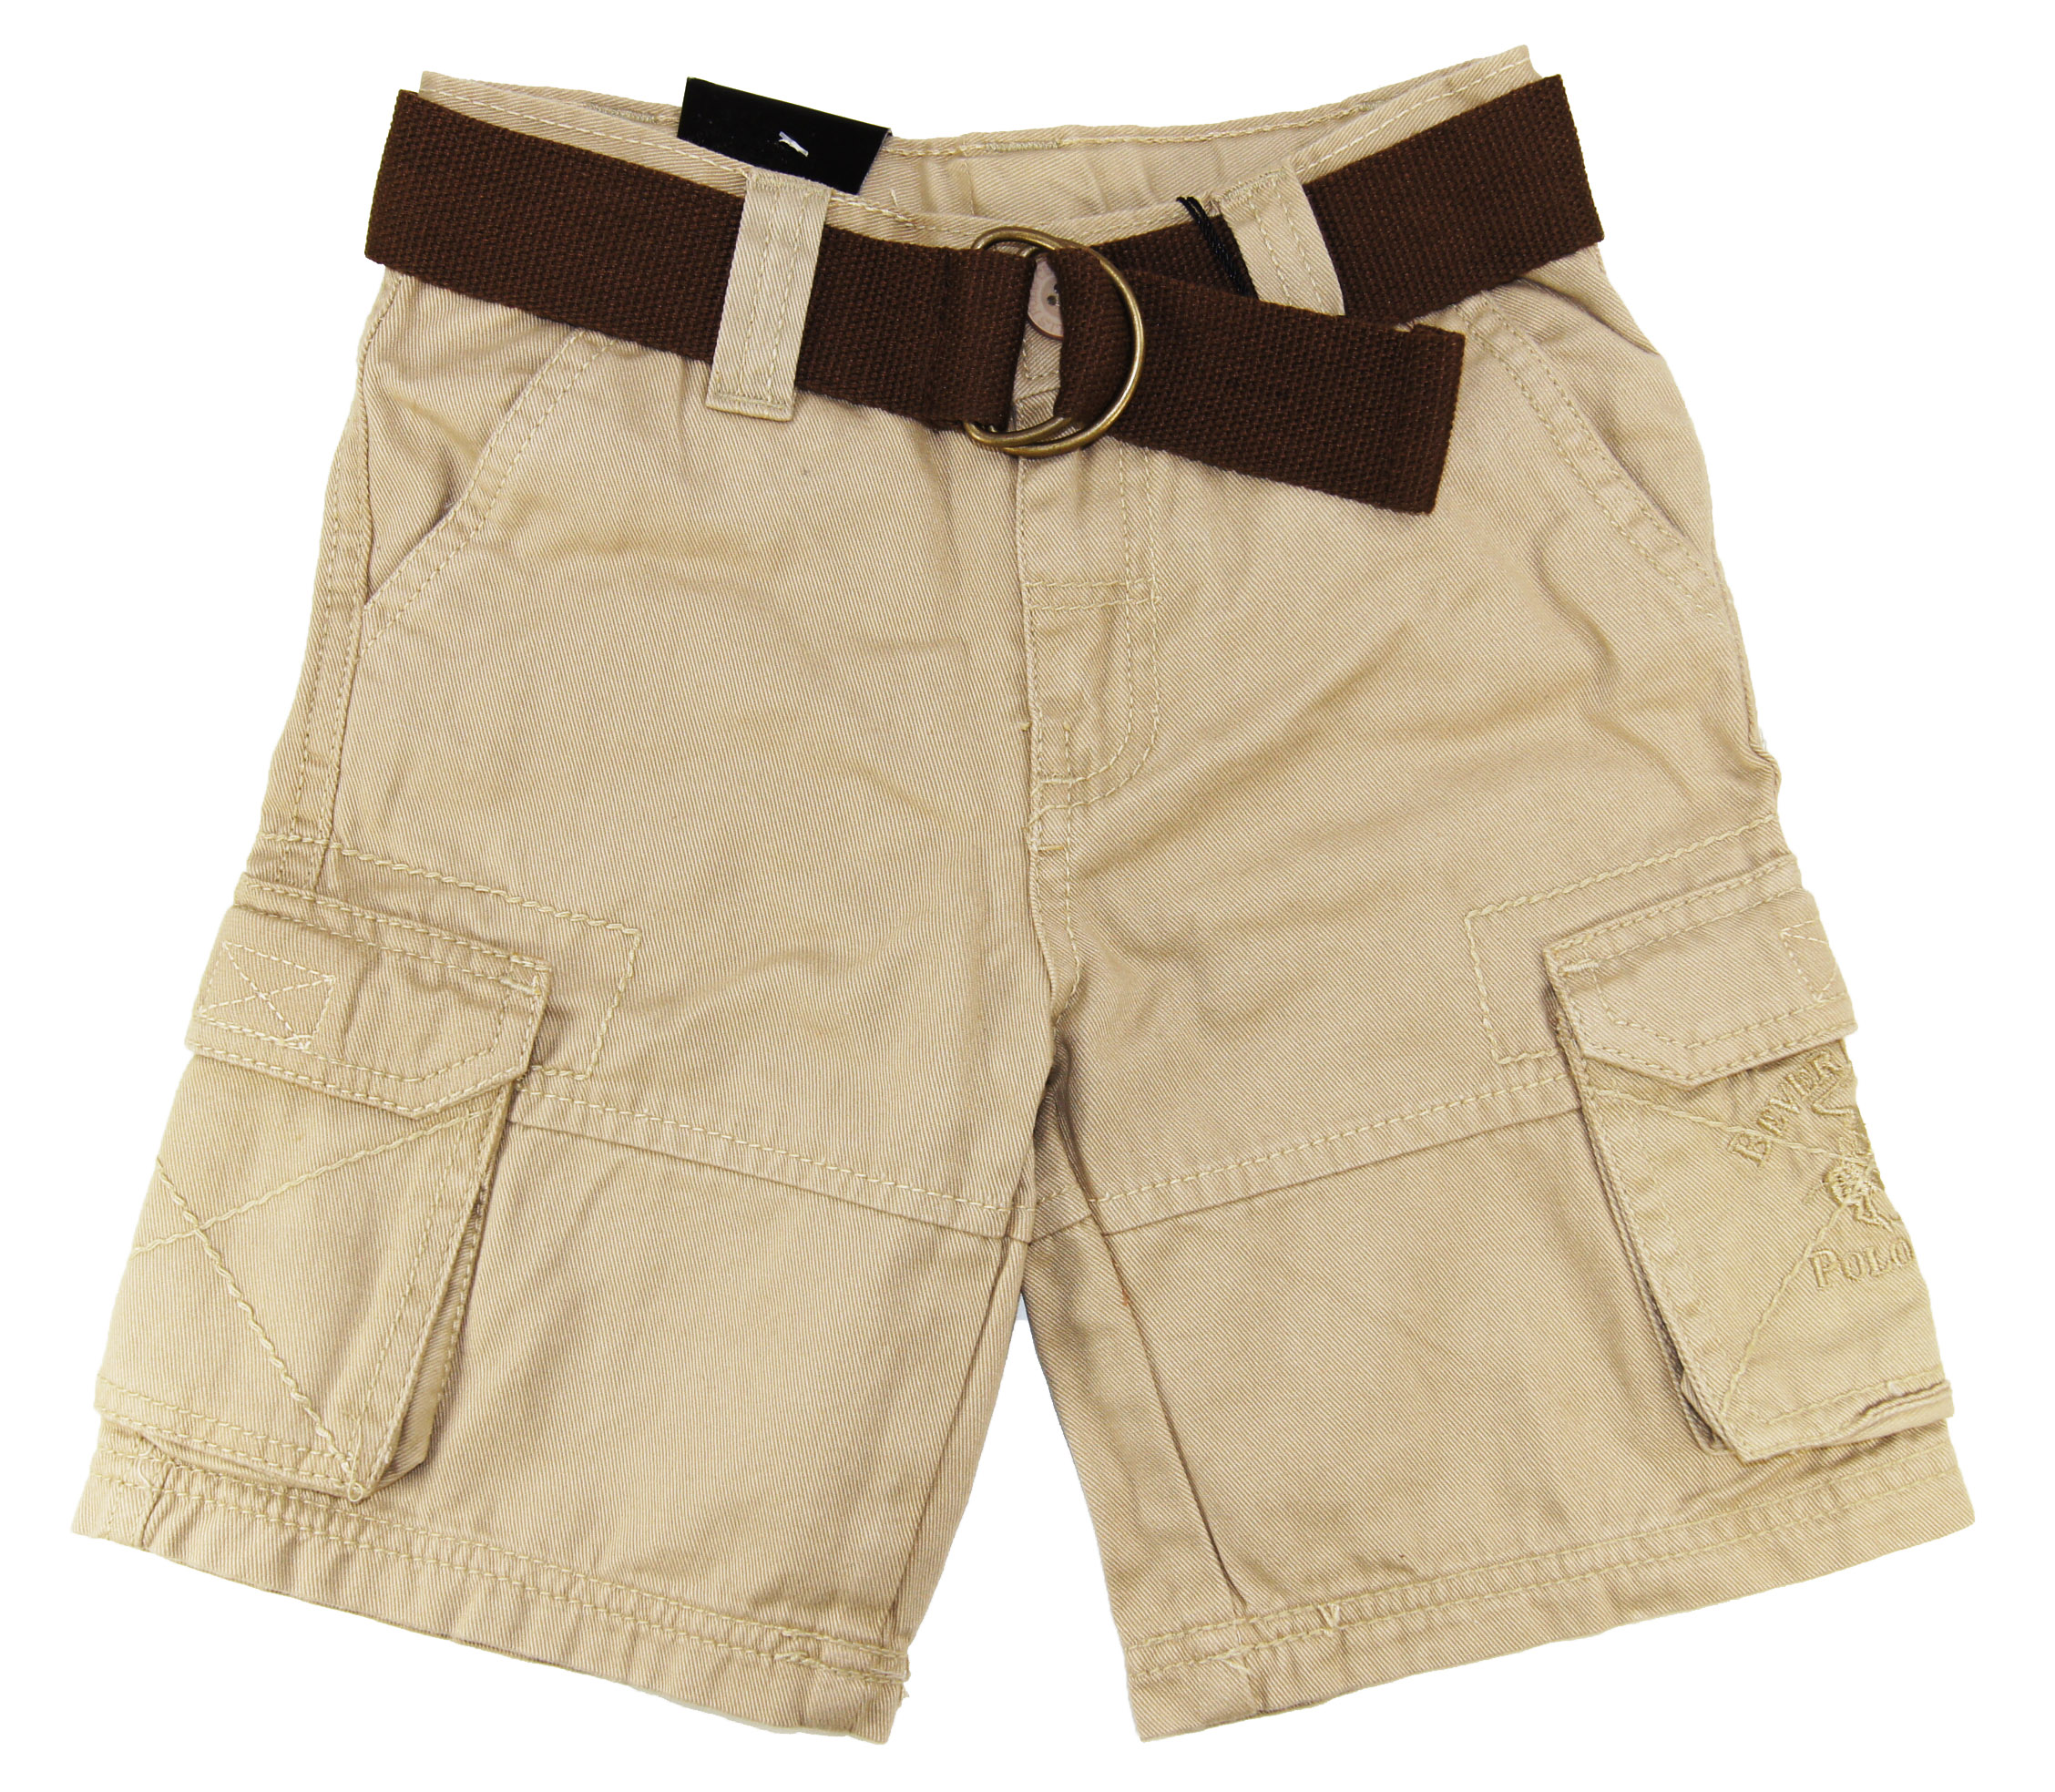 Beverly Hills Polo Club Plaid Toddler Boys Beige Peached Twill Cargo Shorts 3T4T at Sears.com